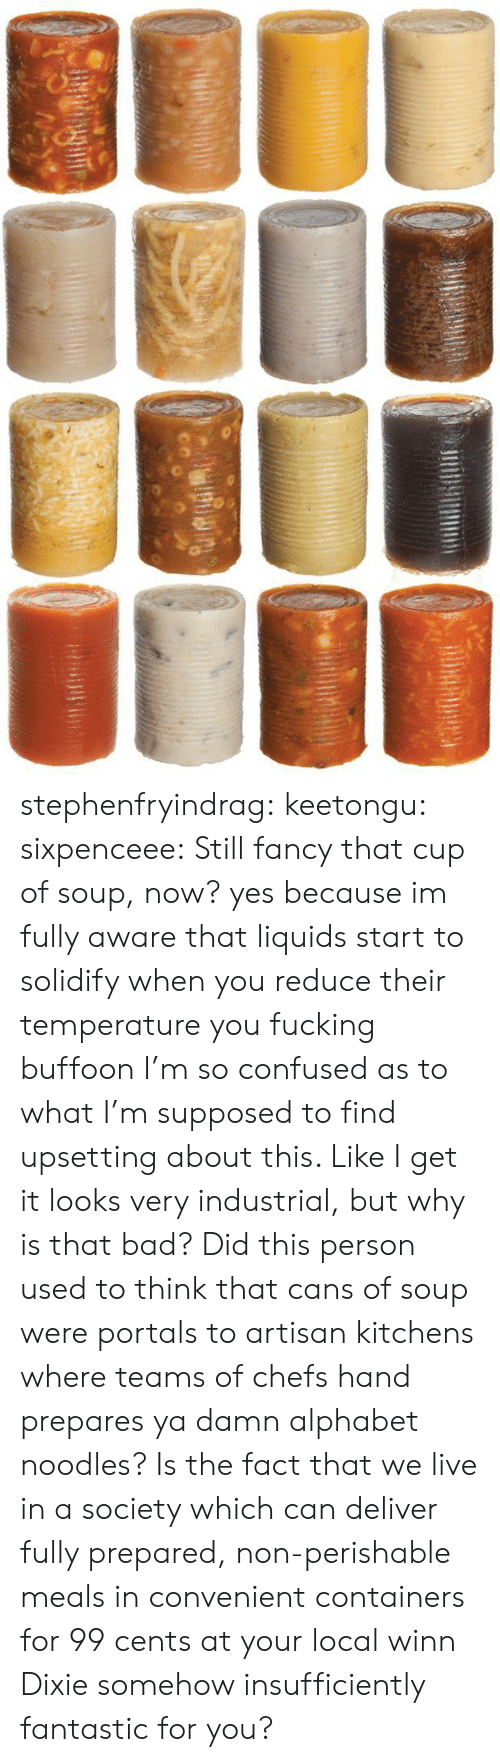 Bad, Confused, and Fucking: stephenfryindrag:  keetongu:  sixpenceee:  Still fancy that cup of soup, now?  yes because im fully aware that liquids start to solidify when you reduce their temperature you fucking buffoon  I'm so confused as to what I'm supposed to find upsetting about this. Like I get it looks very industrial, but why is that bad? Did this person used to think that cans of soup were portals to artisan kitchens where teams of chefs hand prepares ya damn alphabet noodles? Is the fact that we live in a society which can deliver fully prepared, non-perishable meals in convenient containers for 99 cents at your local winn Dixie somehow insufficiently fantastic for you?